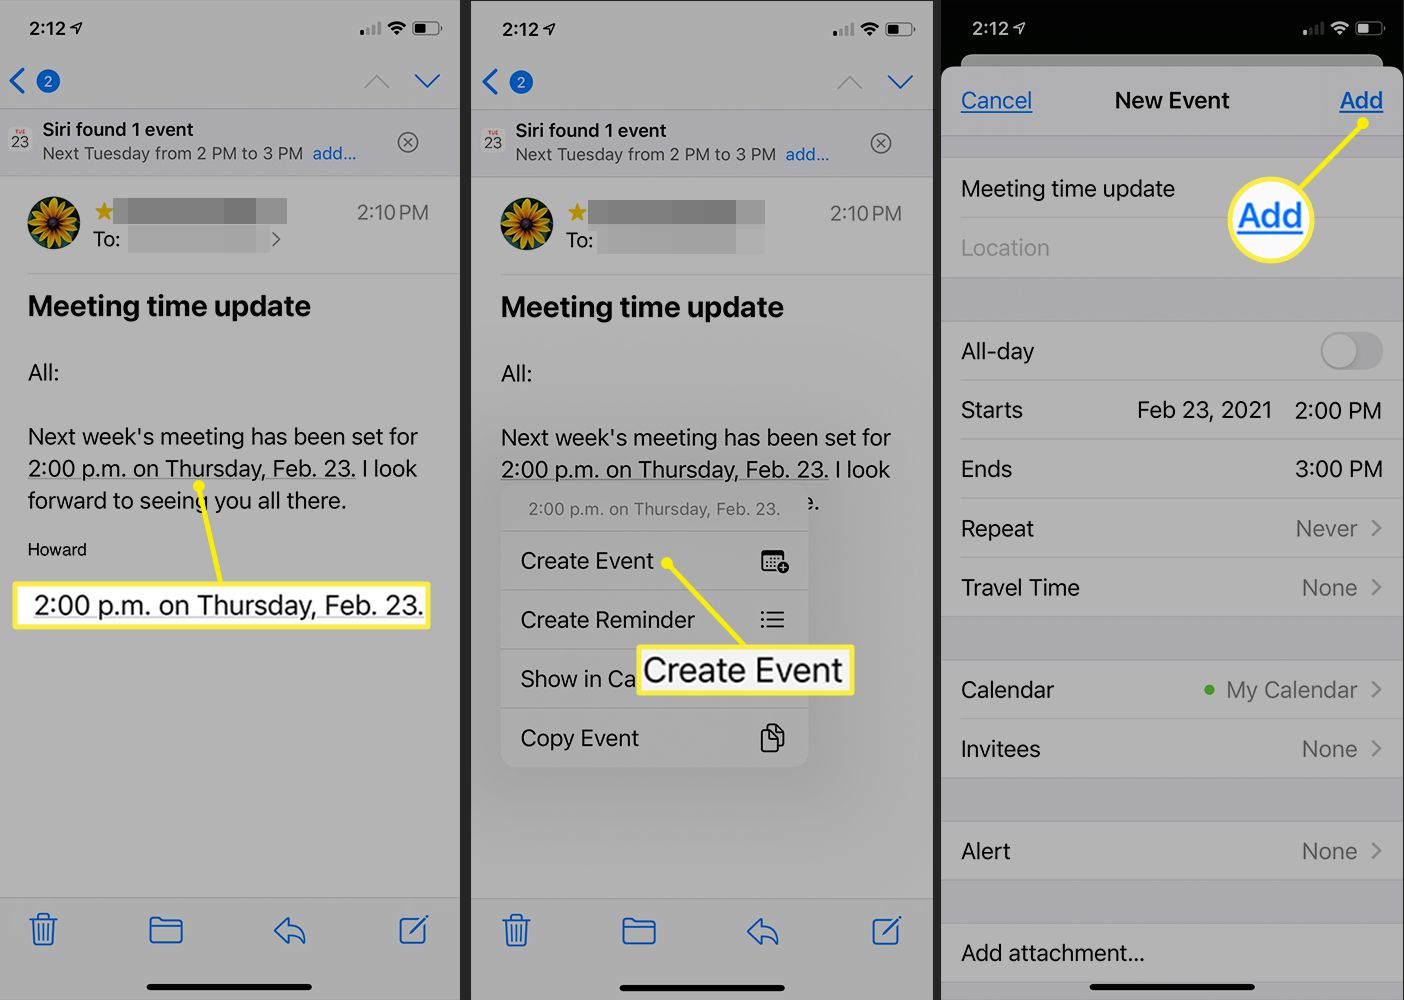 iOS Mail showing a Siri identified event